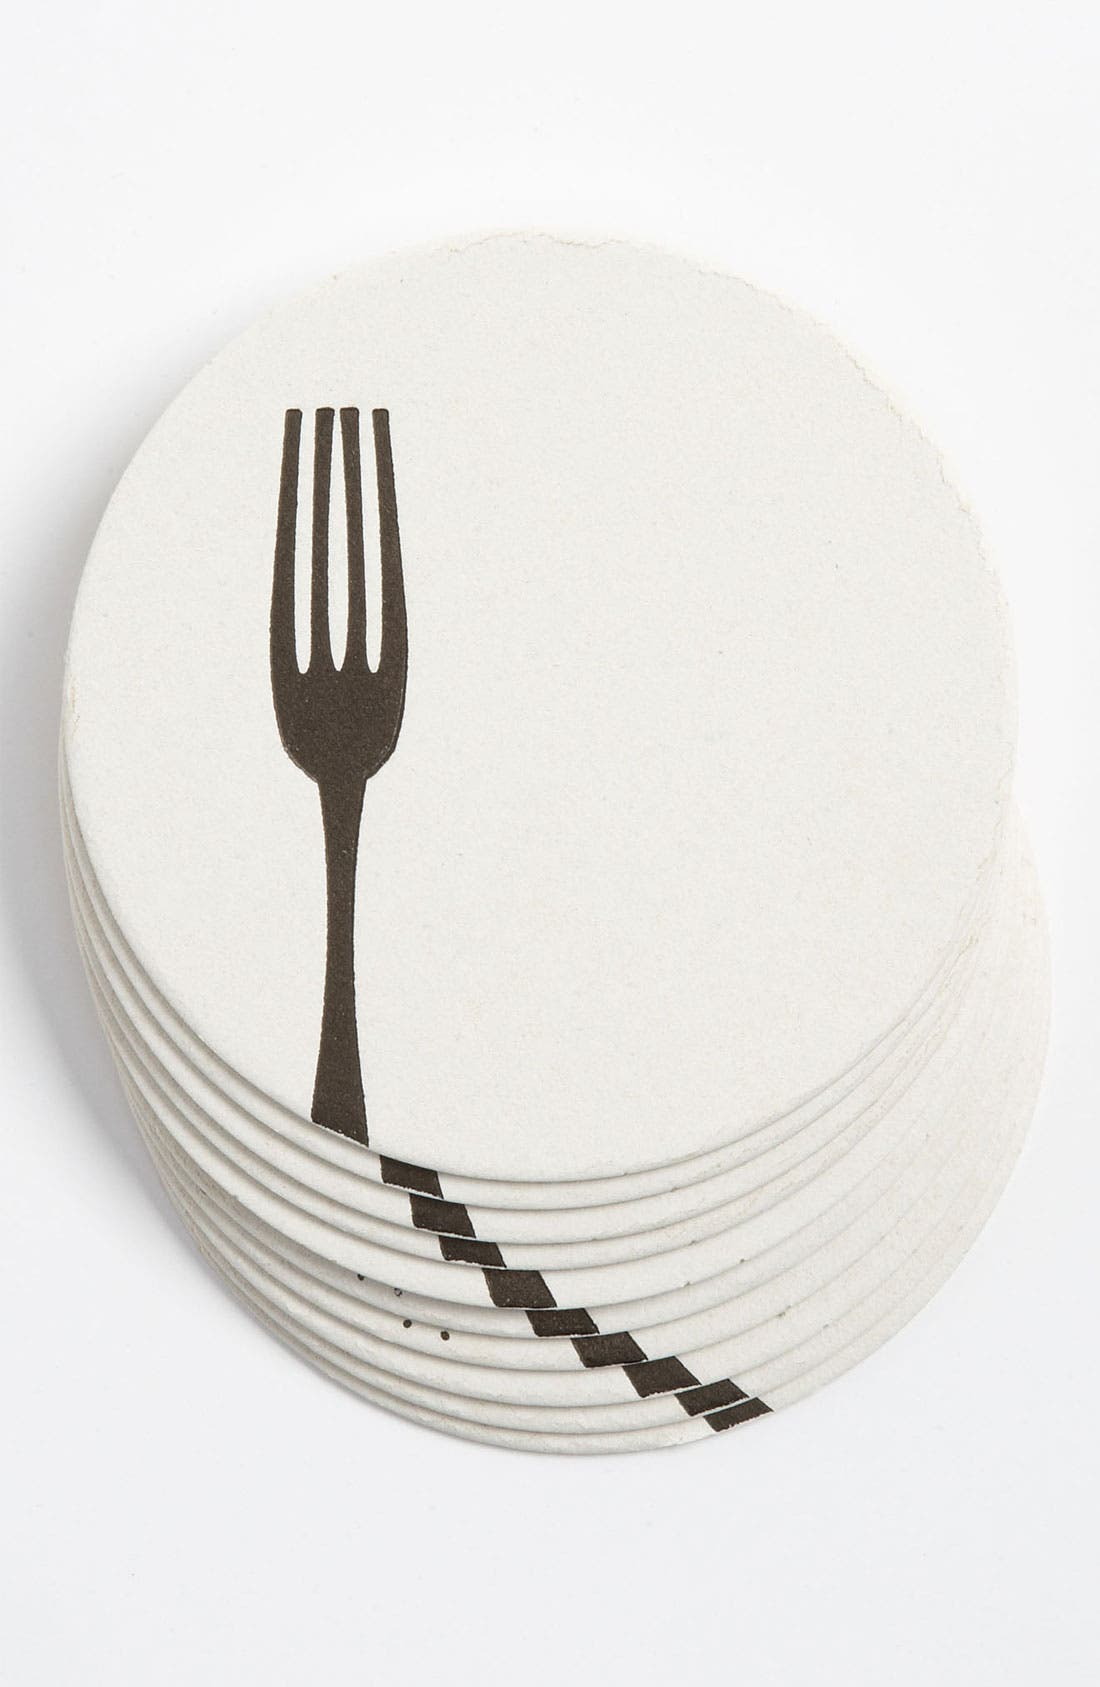 Alternate Image 1 Selected - 'Dinner Fork' Letterpress Coasters (Set of 10)